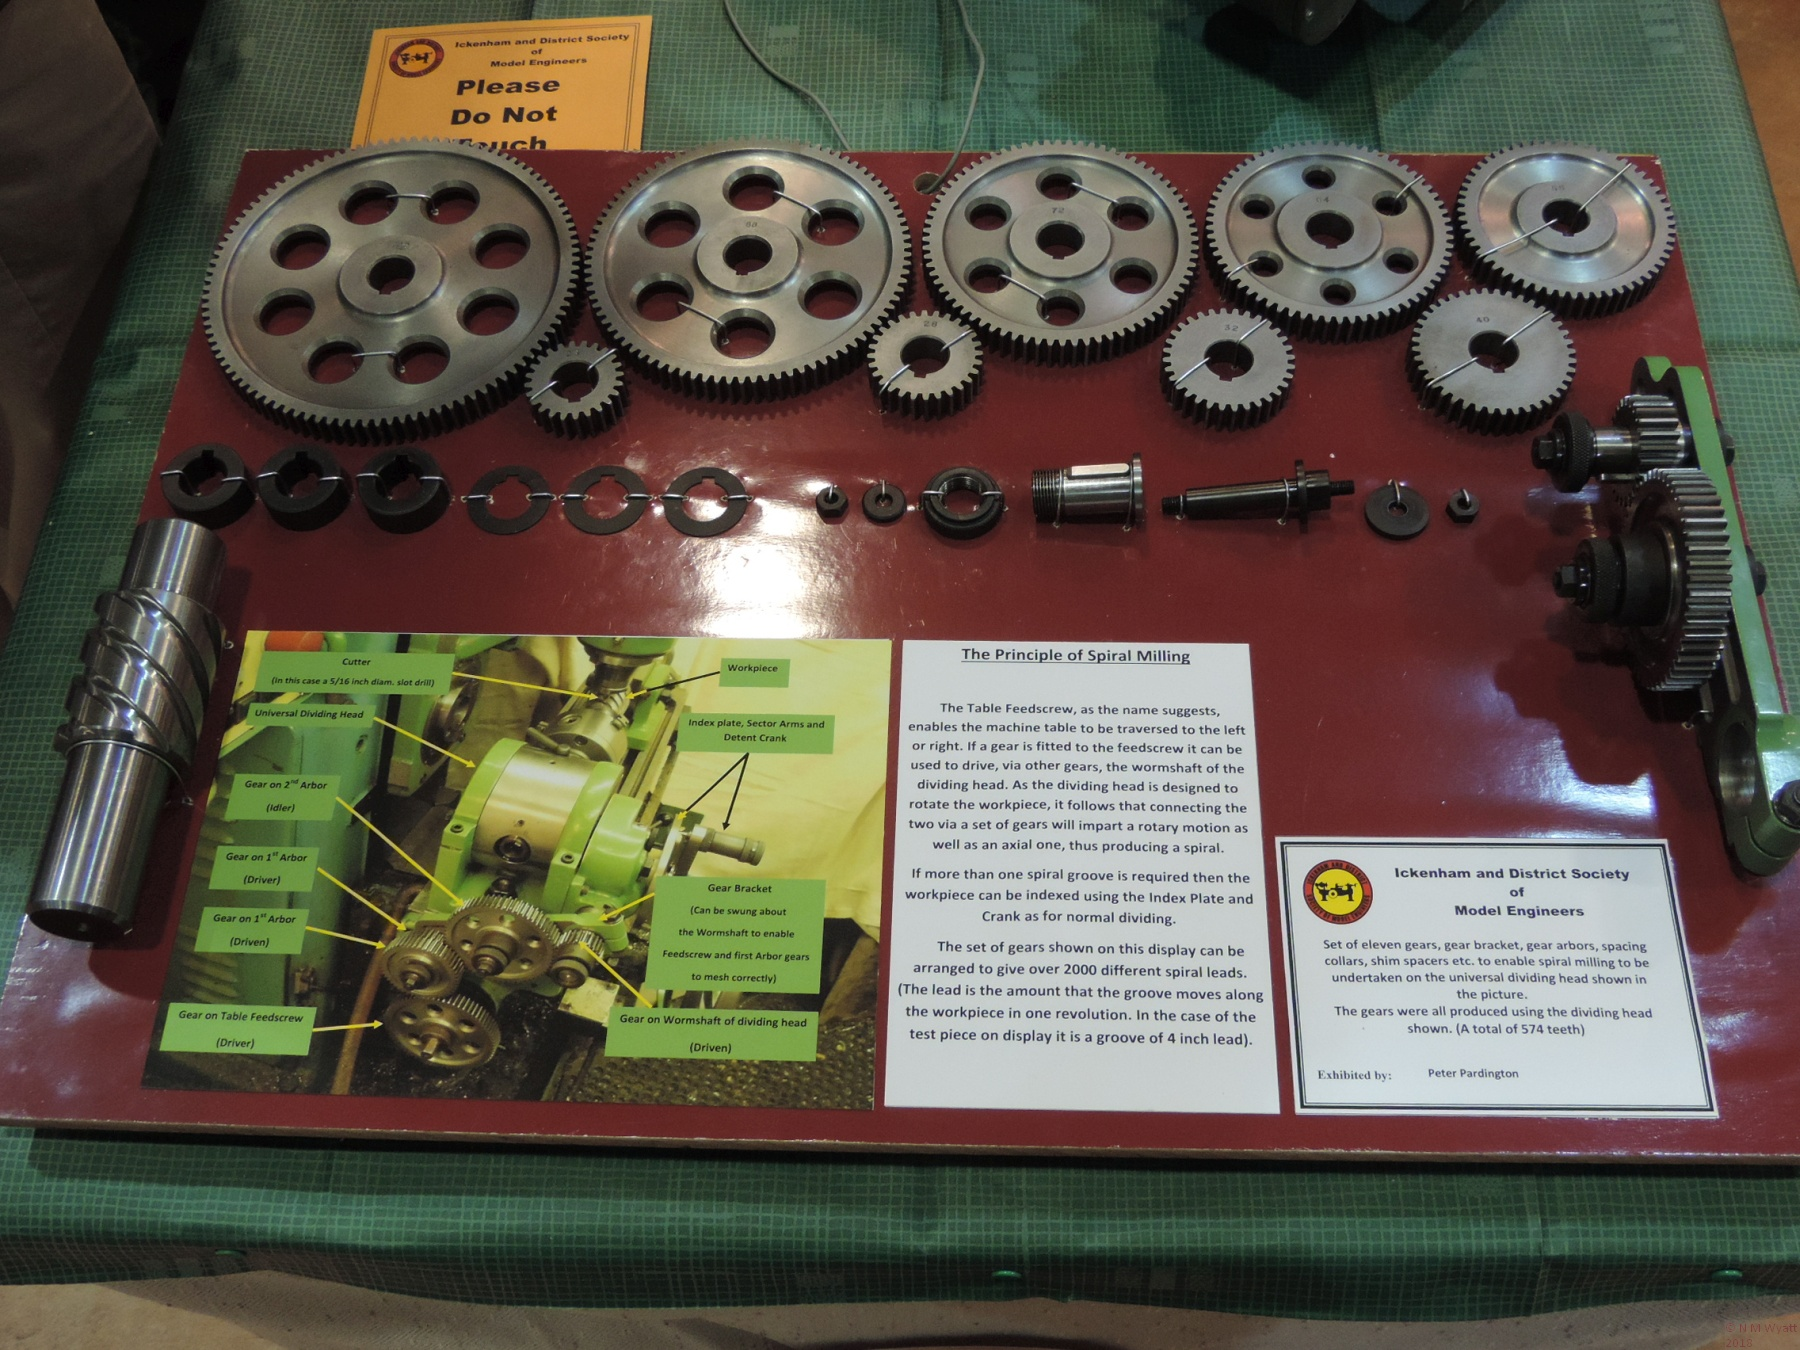 A gratuitous picture showing some gear wheels probably not produced with the aid of an HV6.